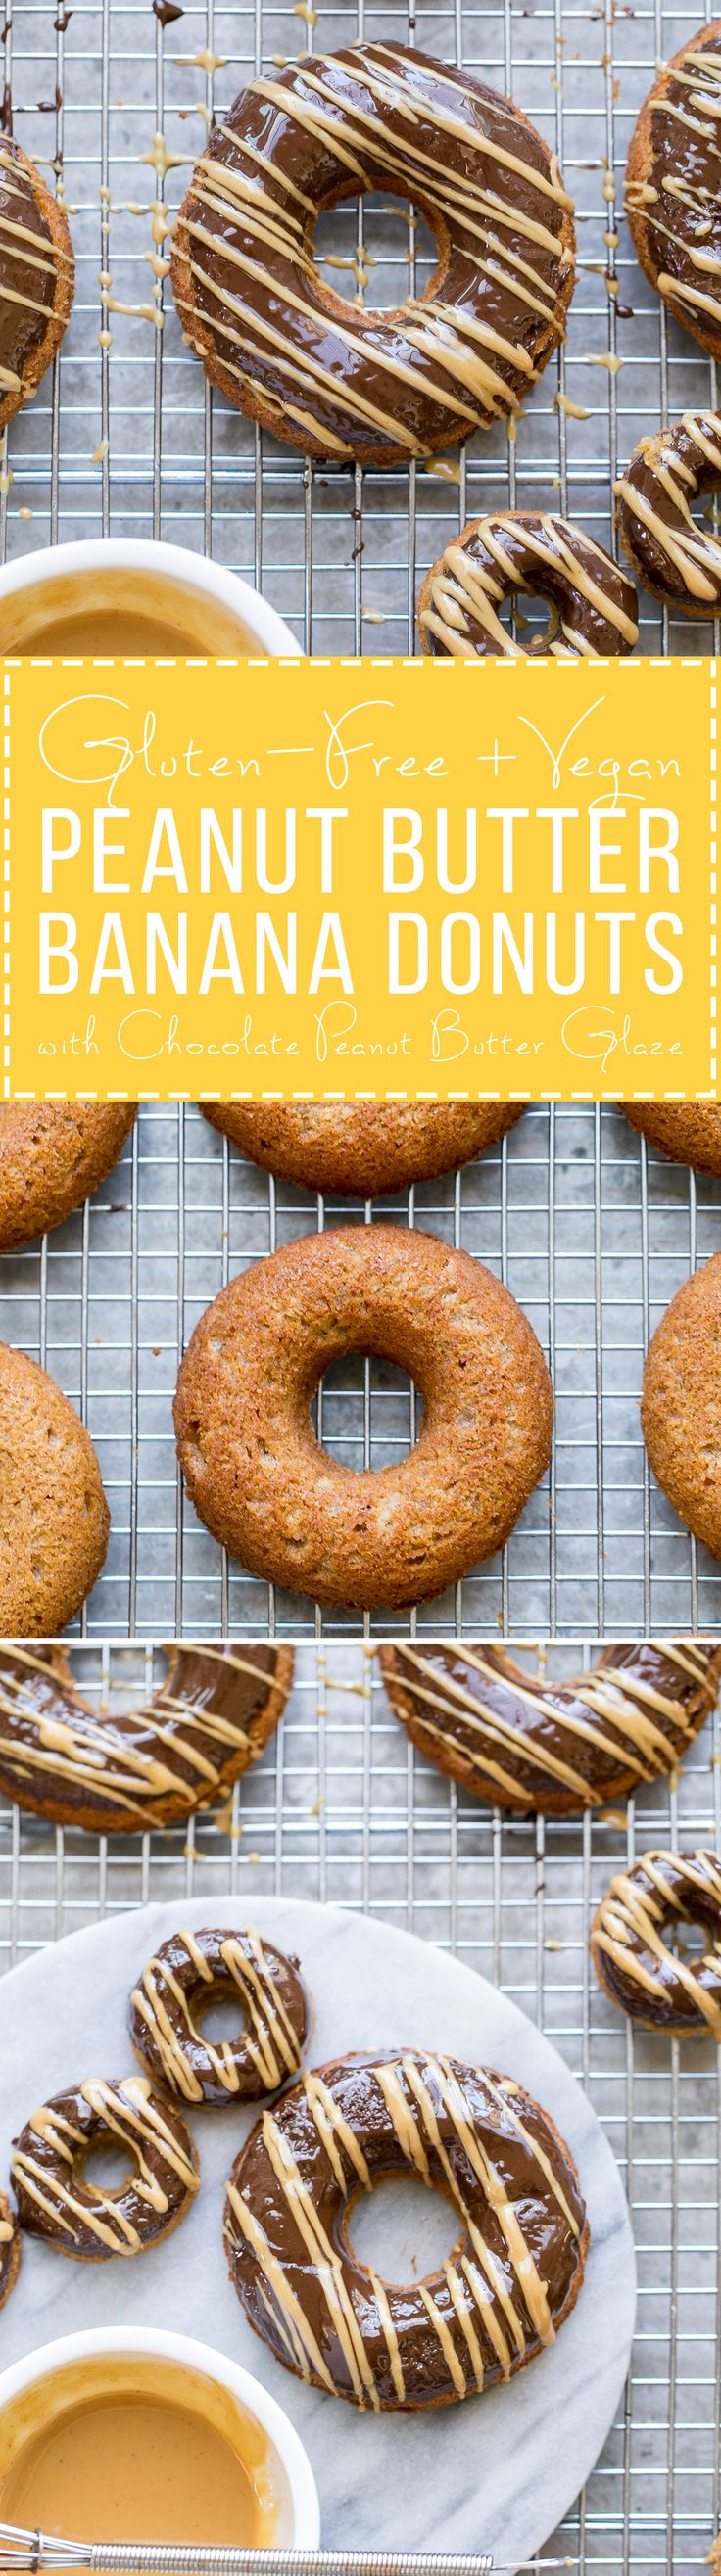 These Peanut Butter Banana Donuts have a dark chocolate glaze topped with a…